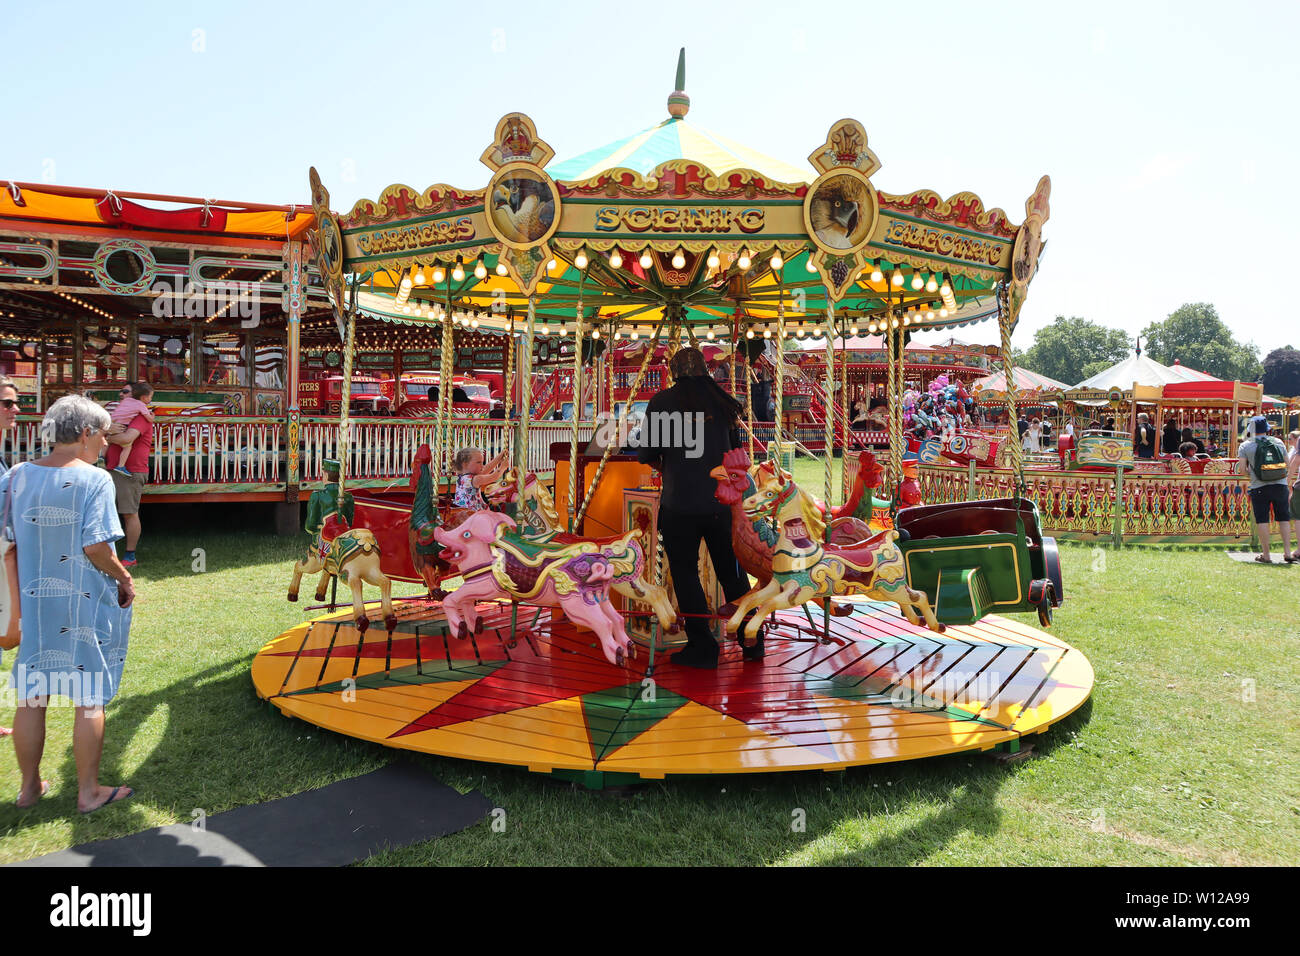 The Dobbies Carters Steam Fair Peckham Rye Common London Uk 29